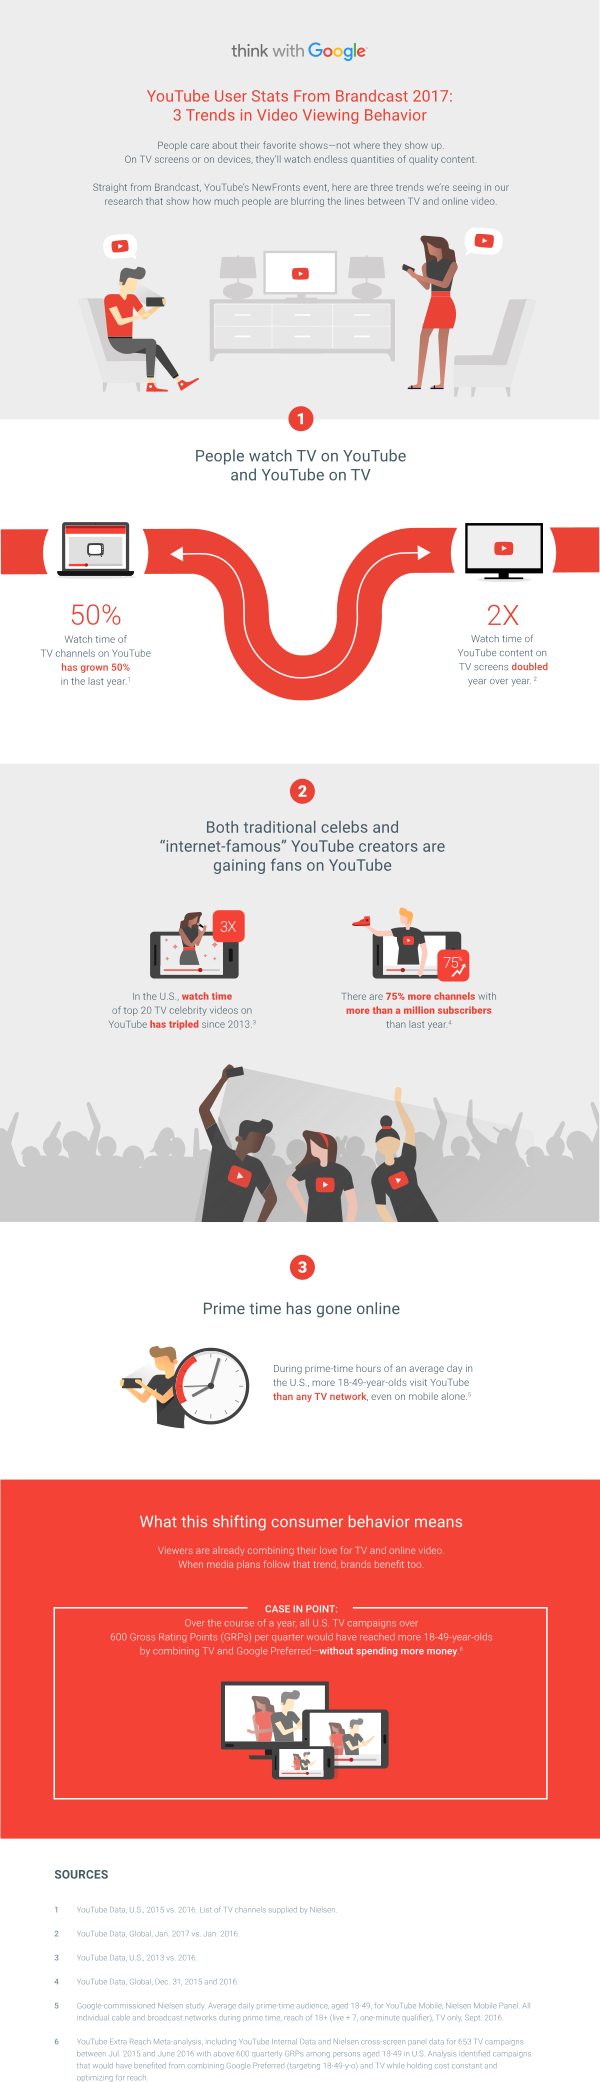 YouTube user stats from Brandcast 2017: 3 trends in video viewing behavior - #infographic